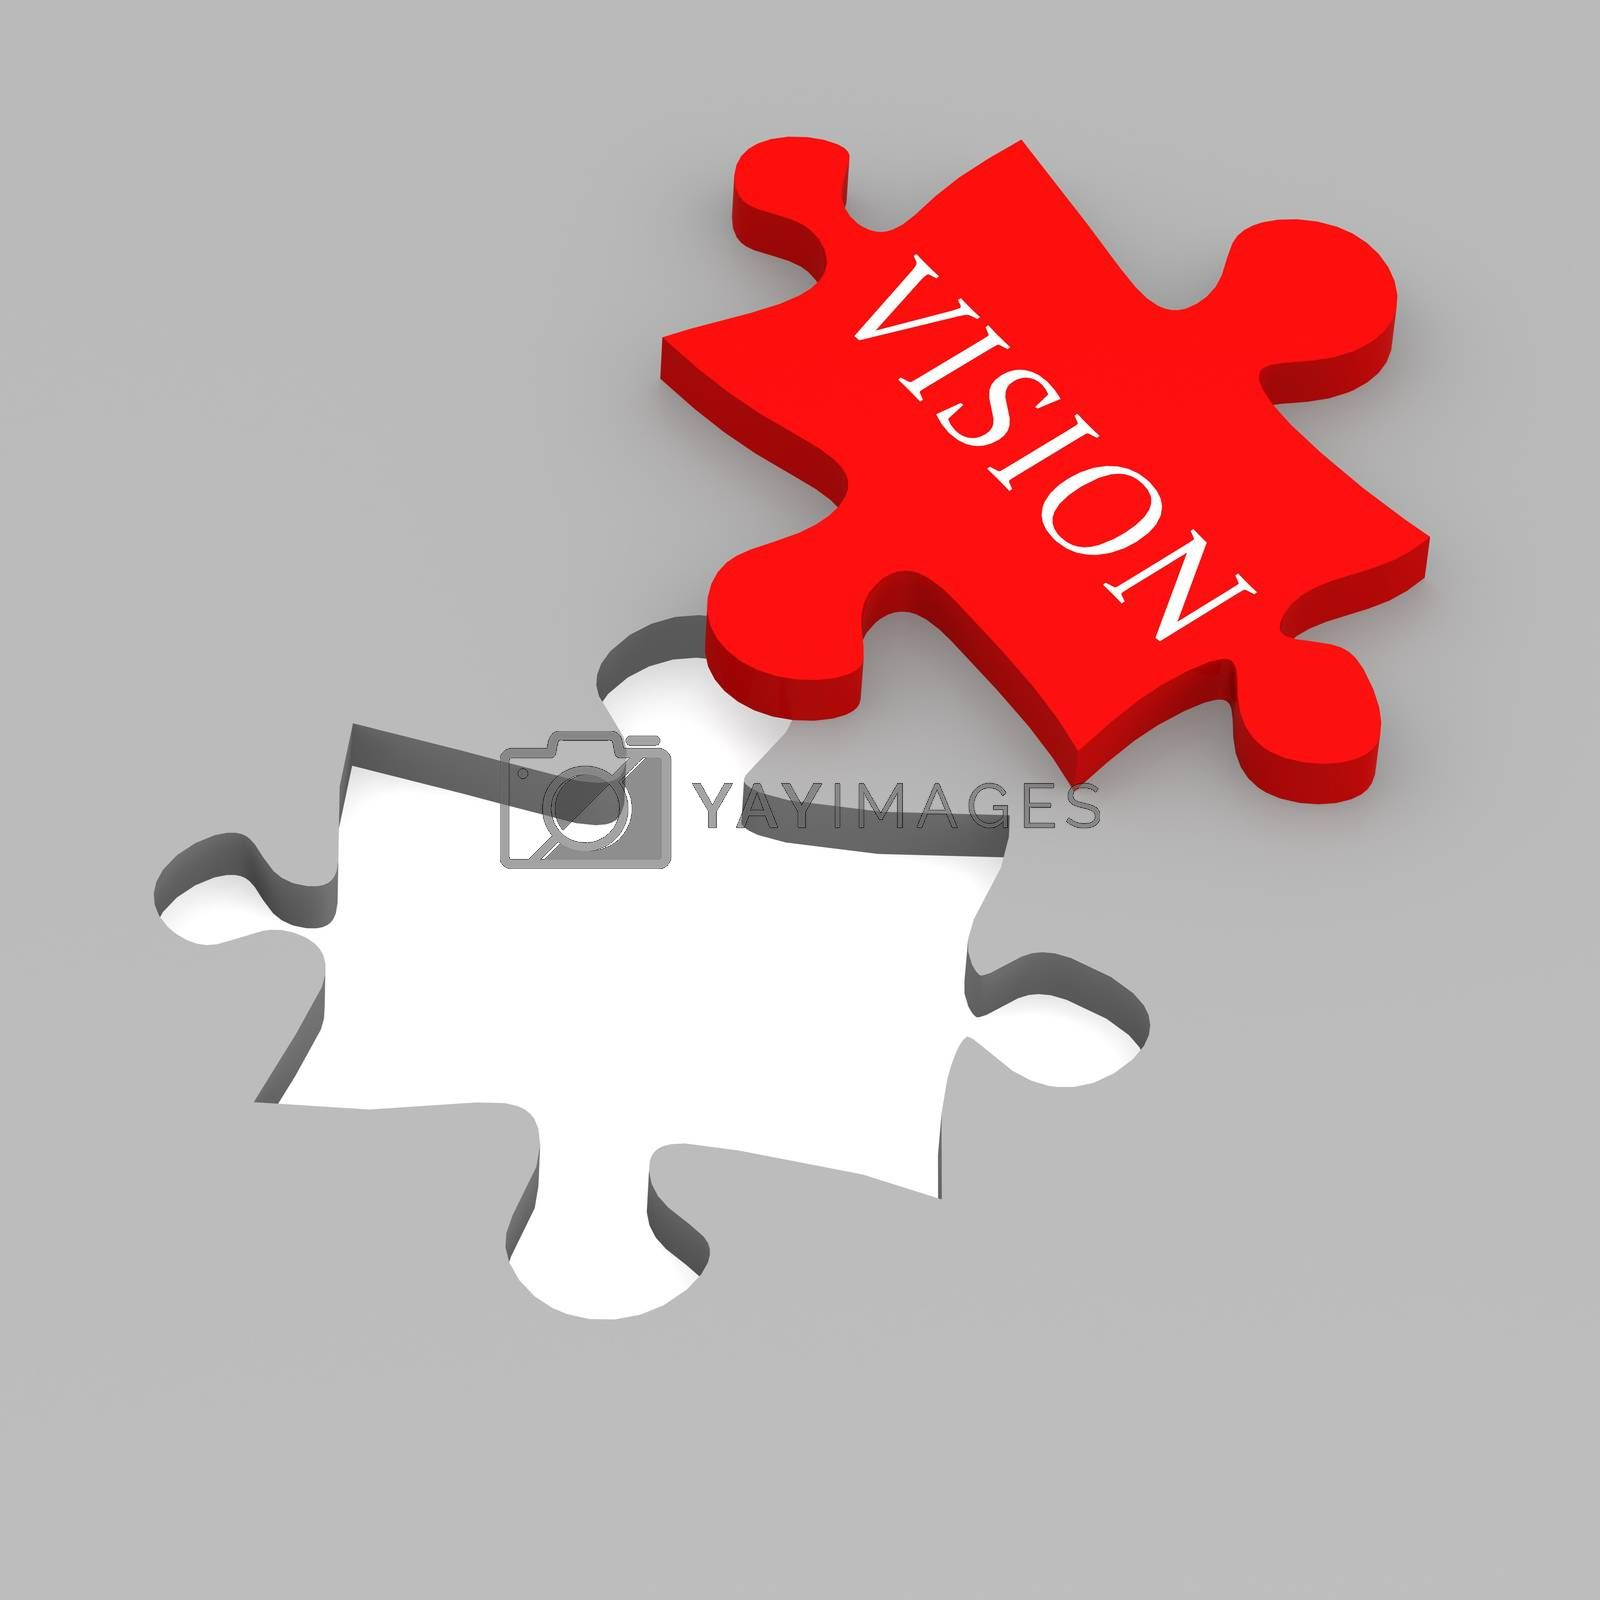 Royalty free image of Vision puzzle by tang90246